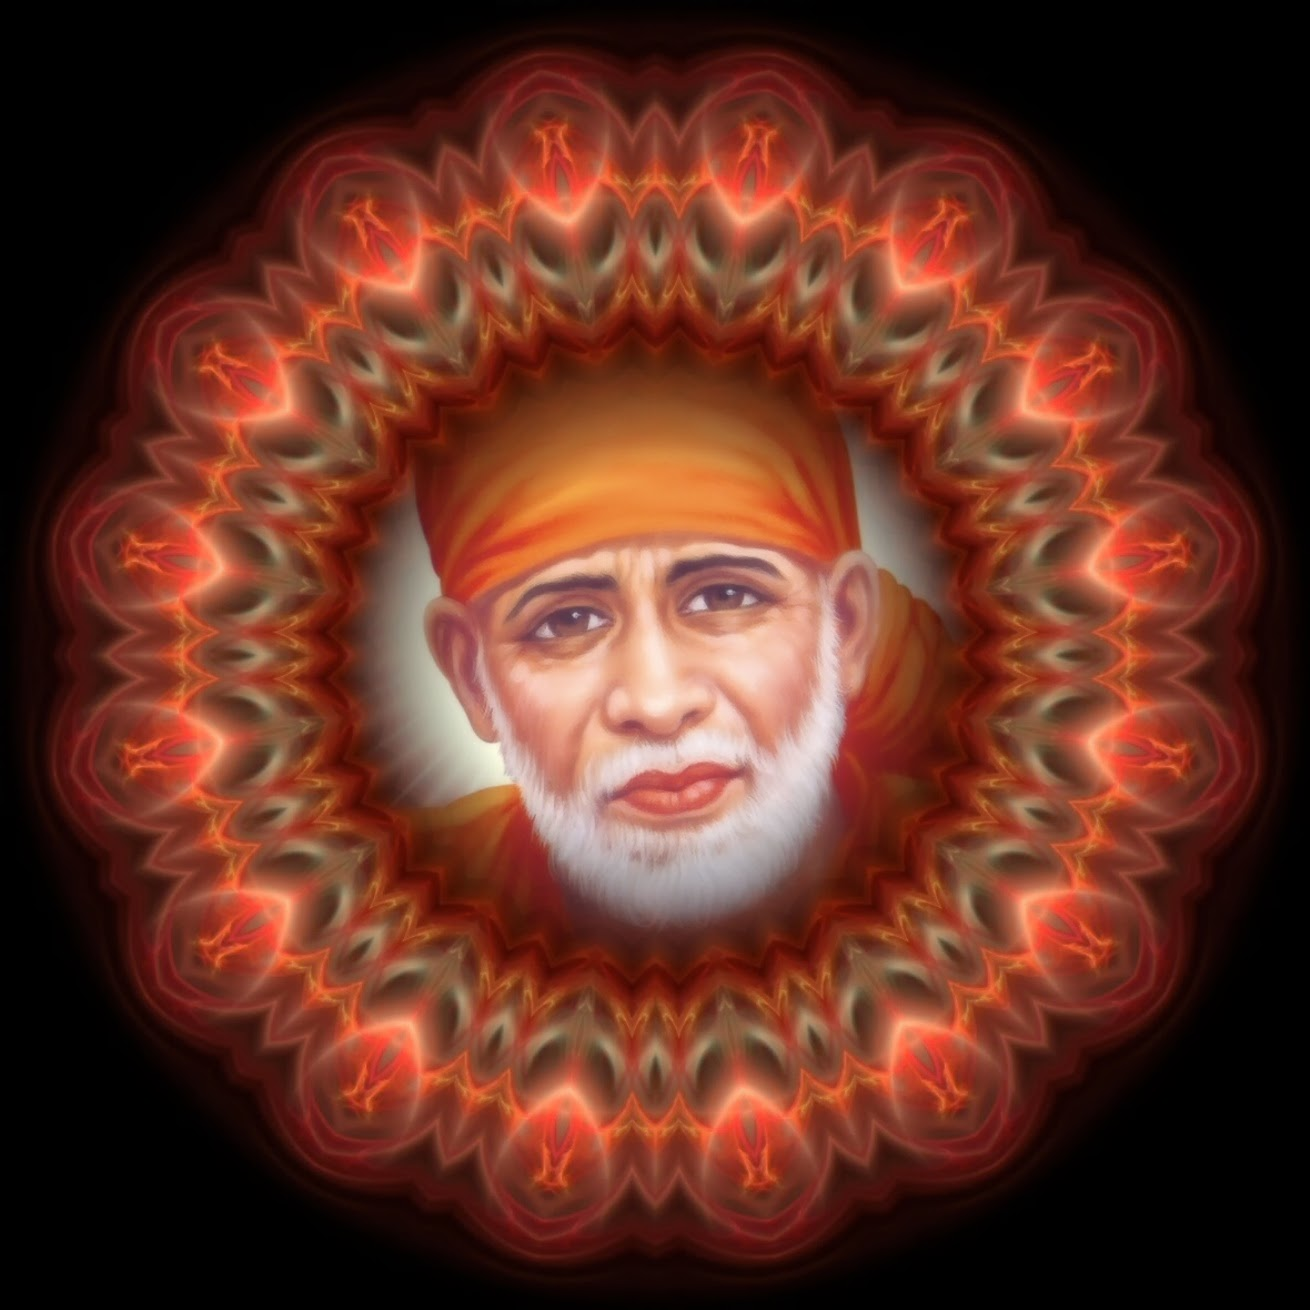 Girl Propose To Boy Wallpaper With Quotes Top 8 Hd Image Wallpaper Of Sai Baba Om Sai Ram The